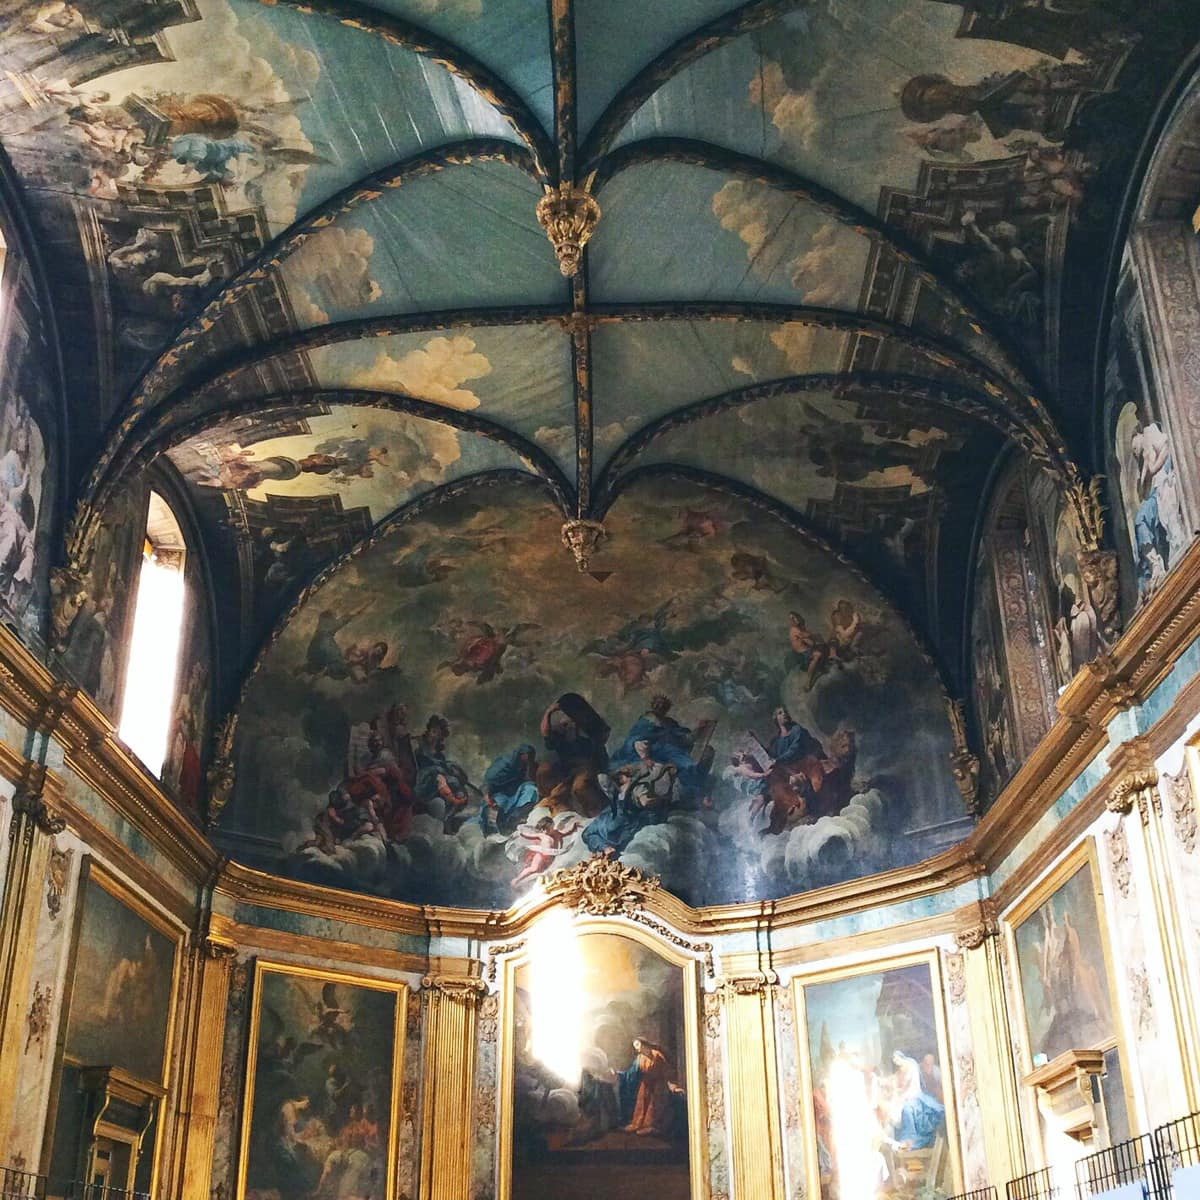 Chapelle des carmelites in Toulouse, France with stunning paintings on the ceiling